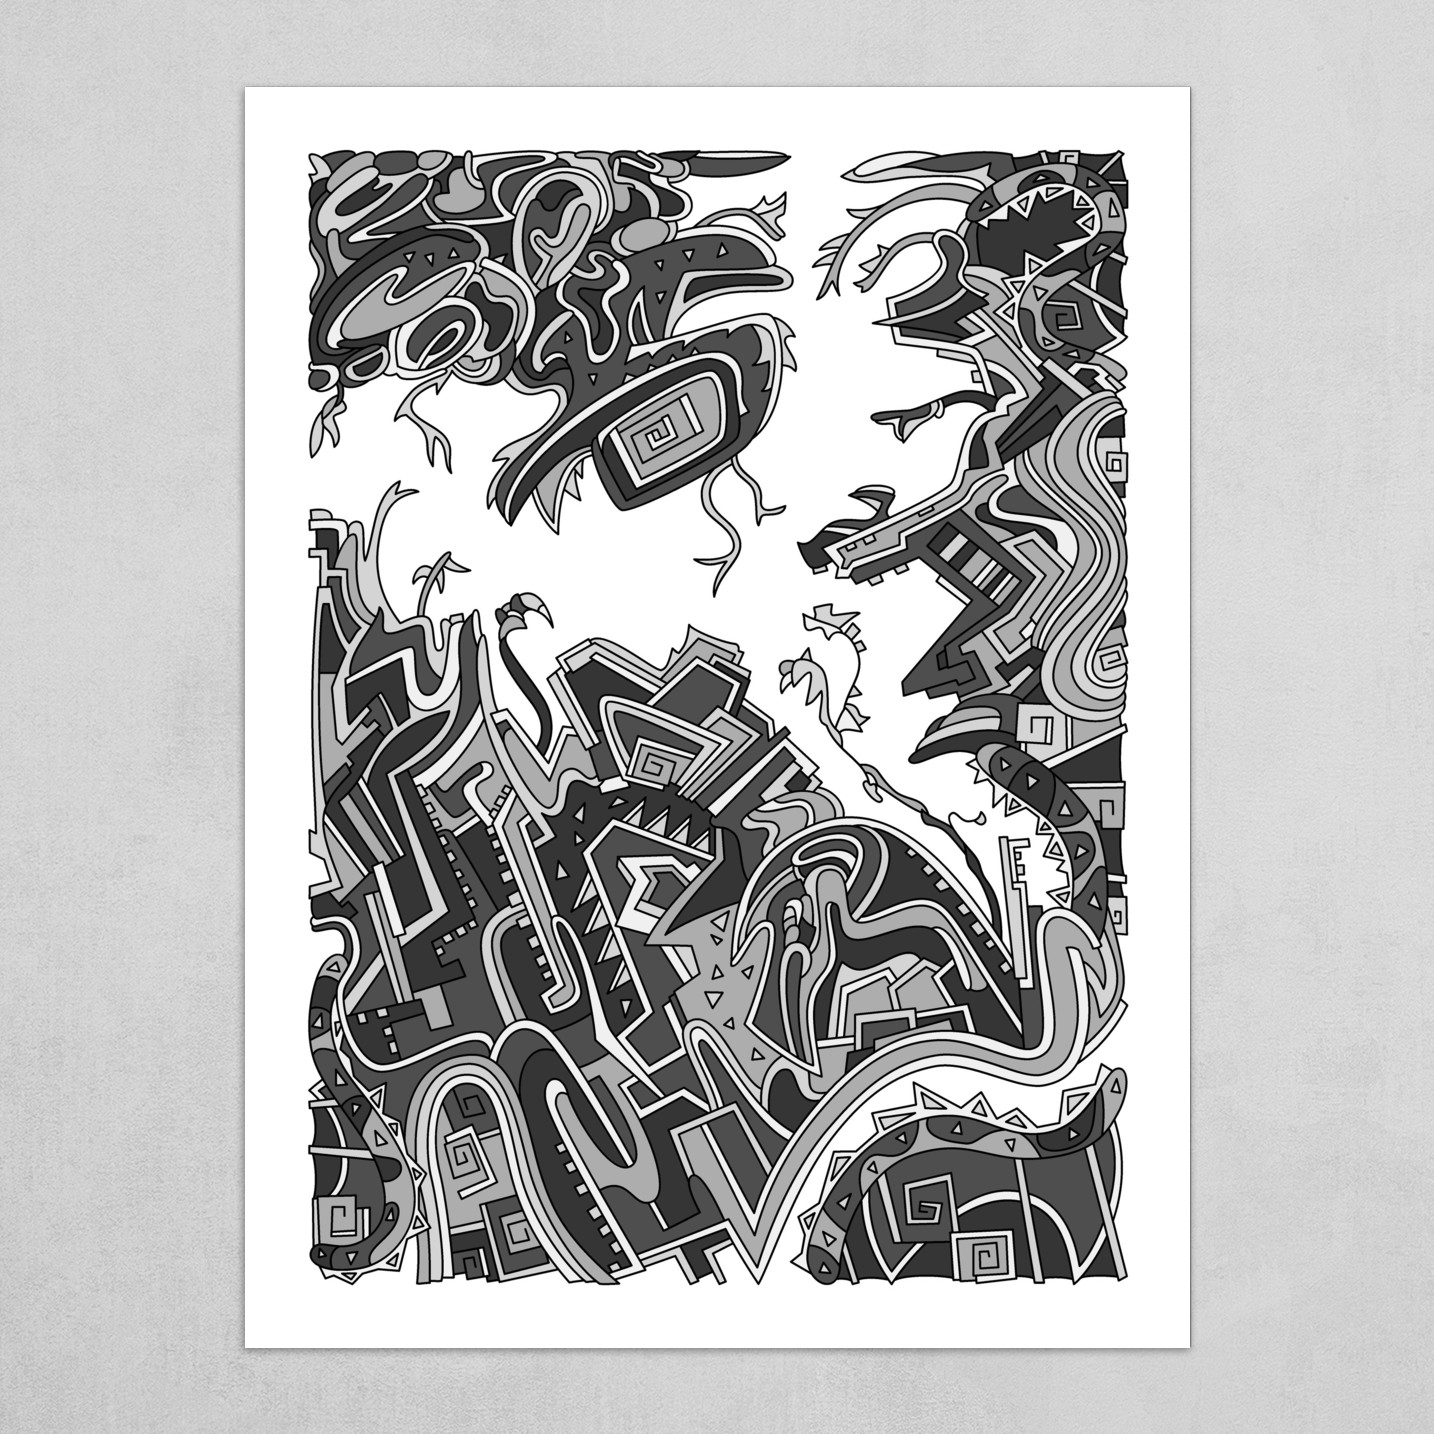 Wandering Abstract Line Art 34: Grayscale